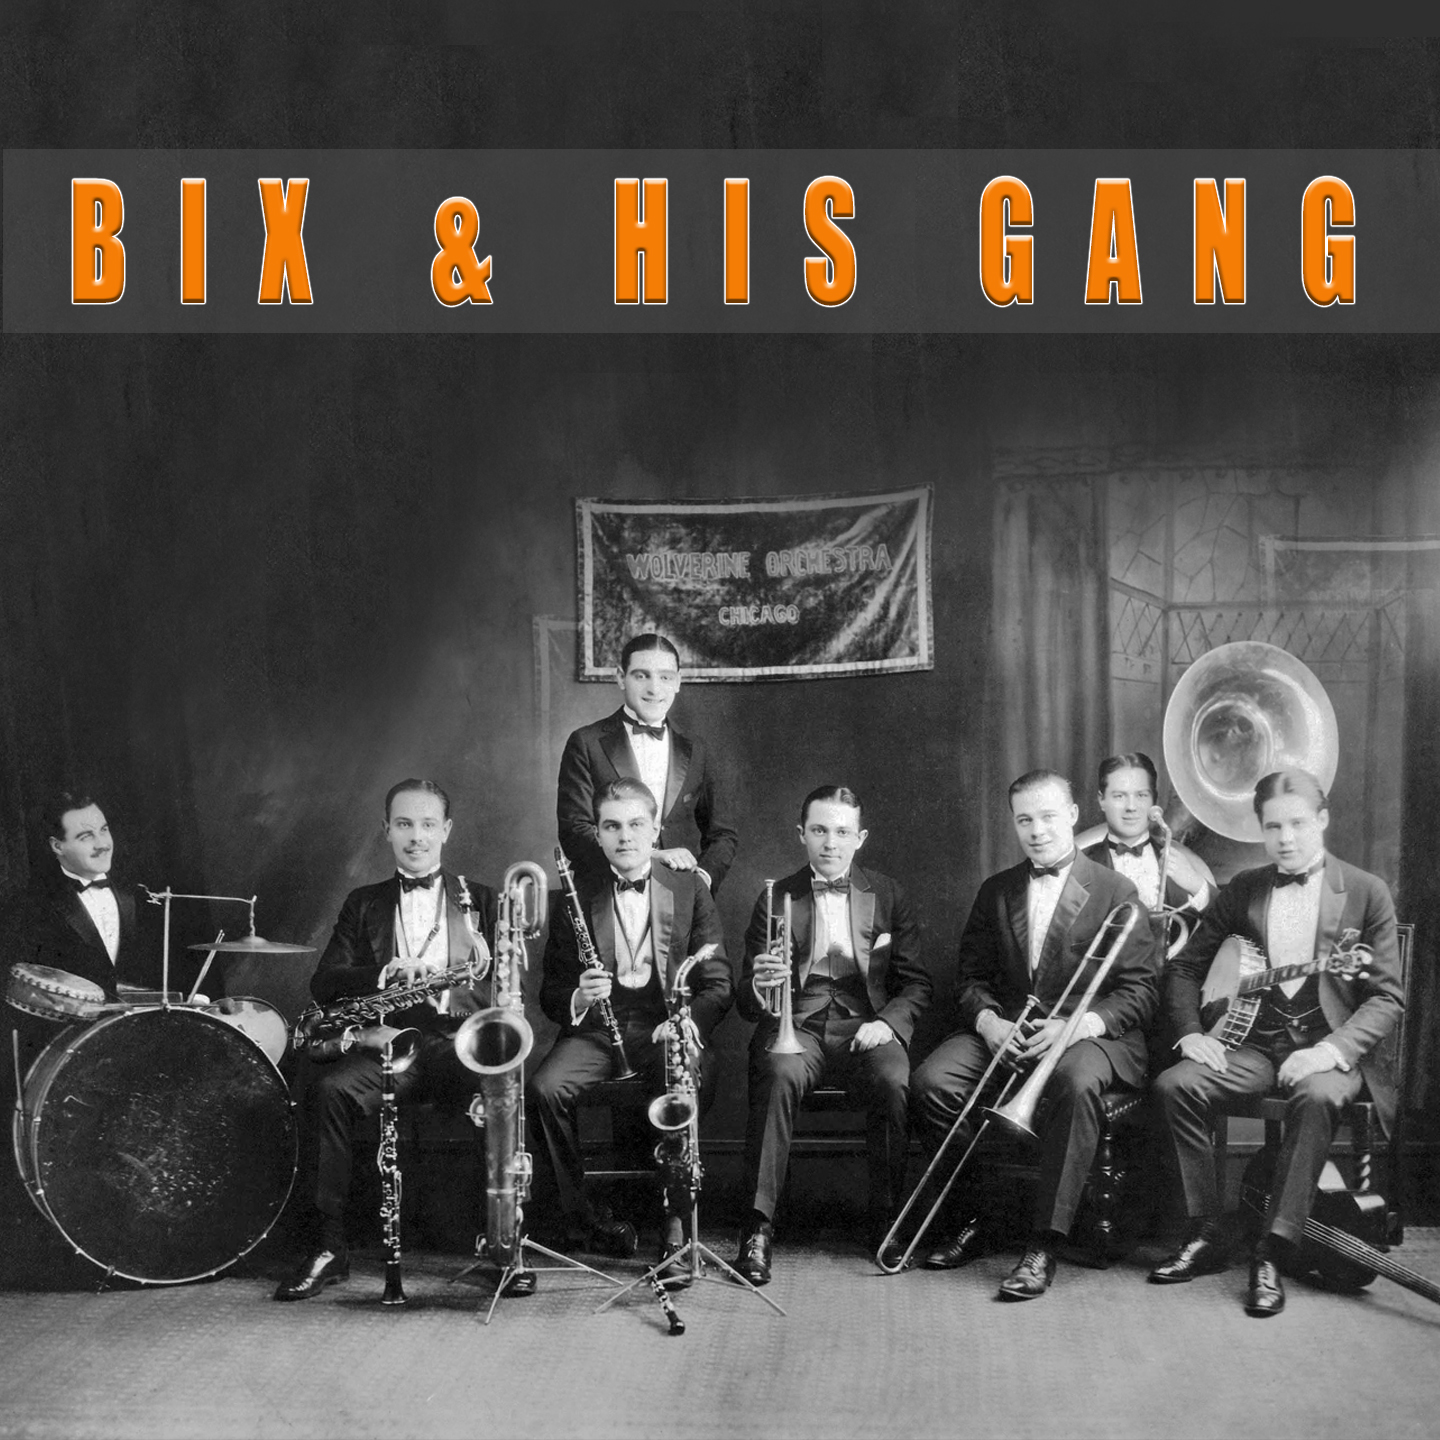 Bix & His Gang